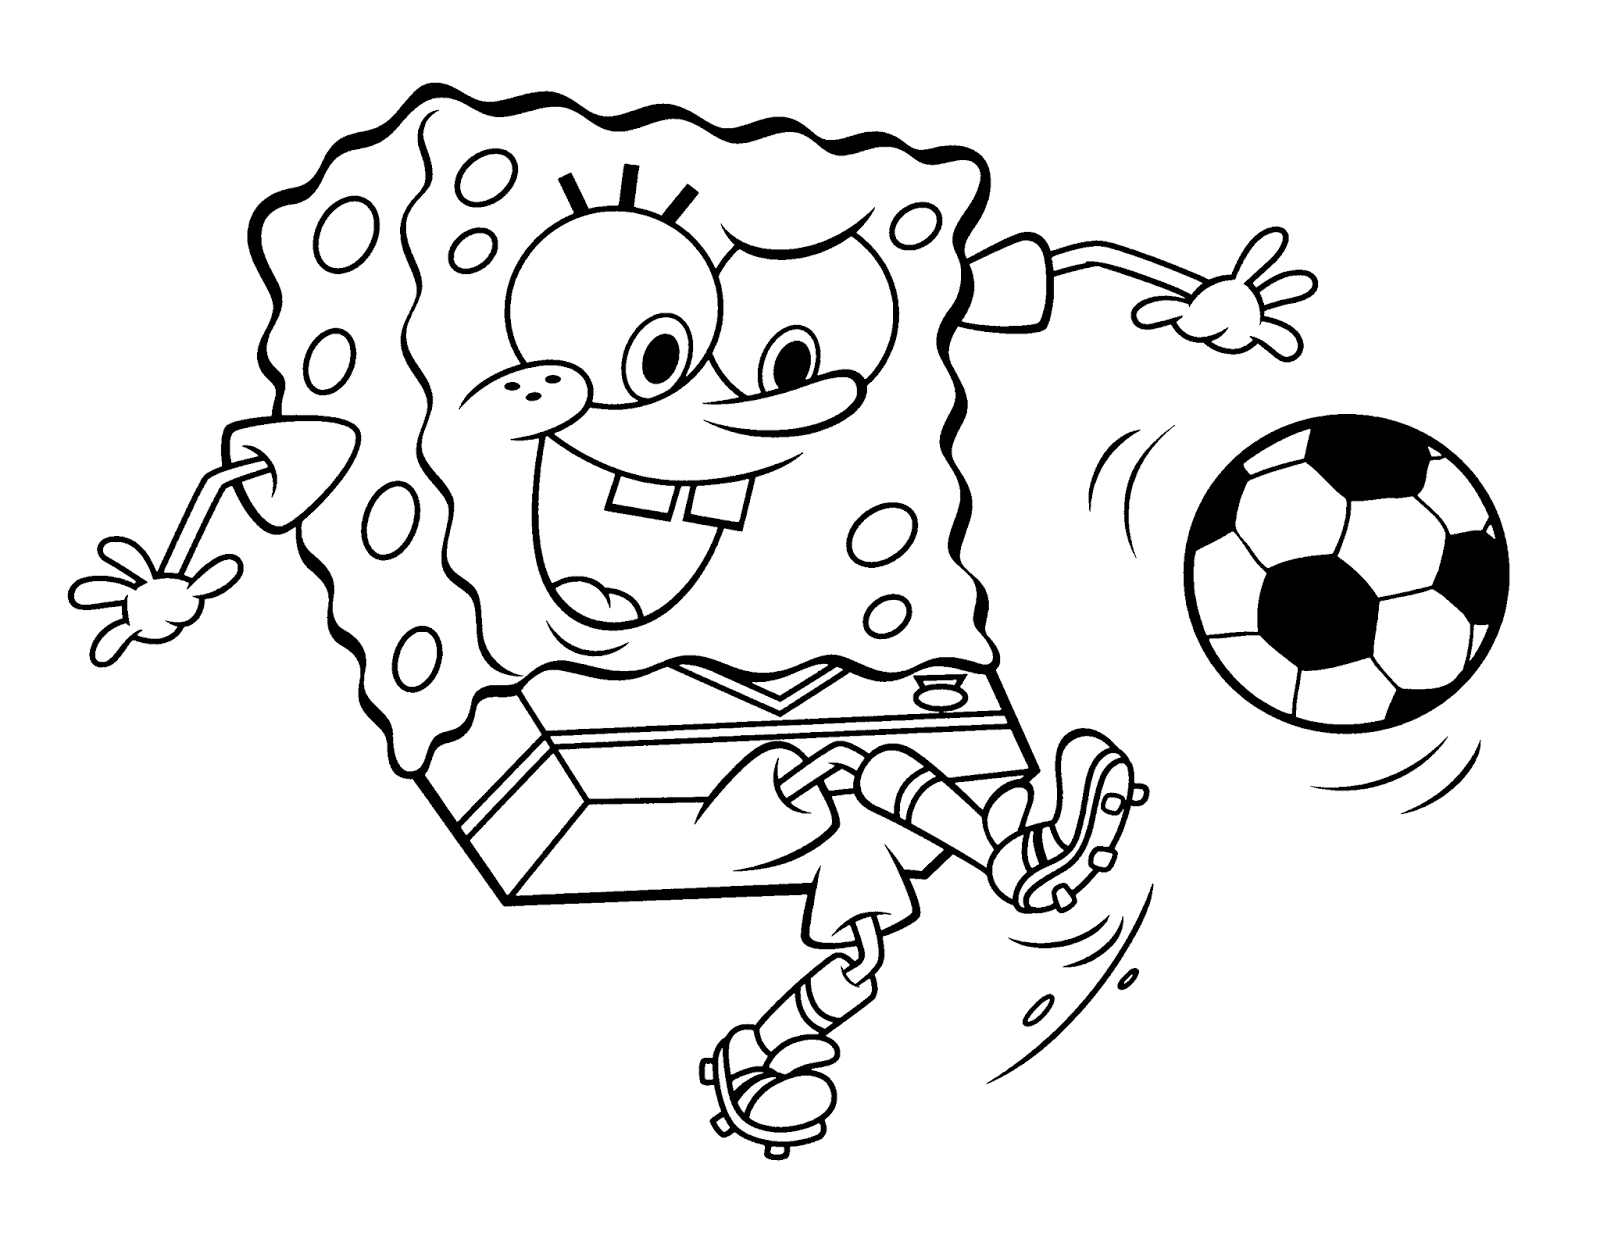 Types Of Sports Coloring Pages For Kids Football And Rugby Coloring Image